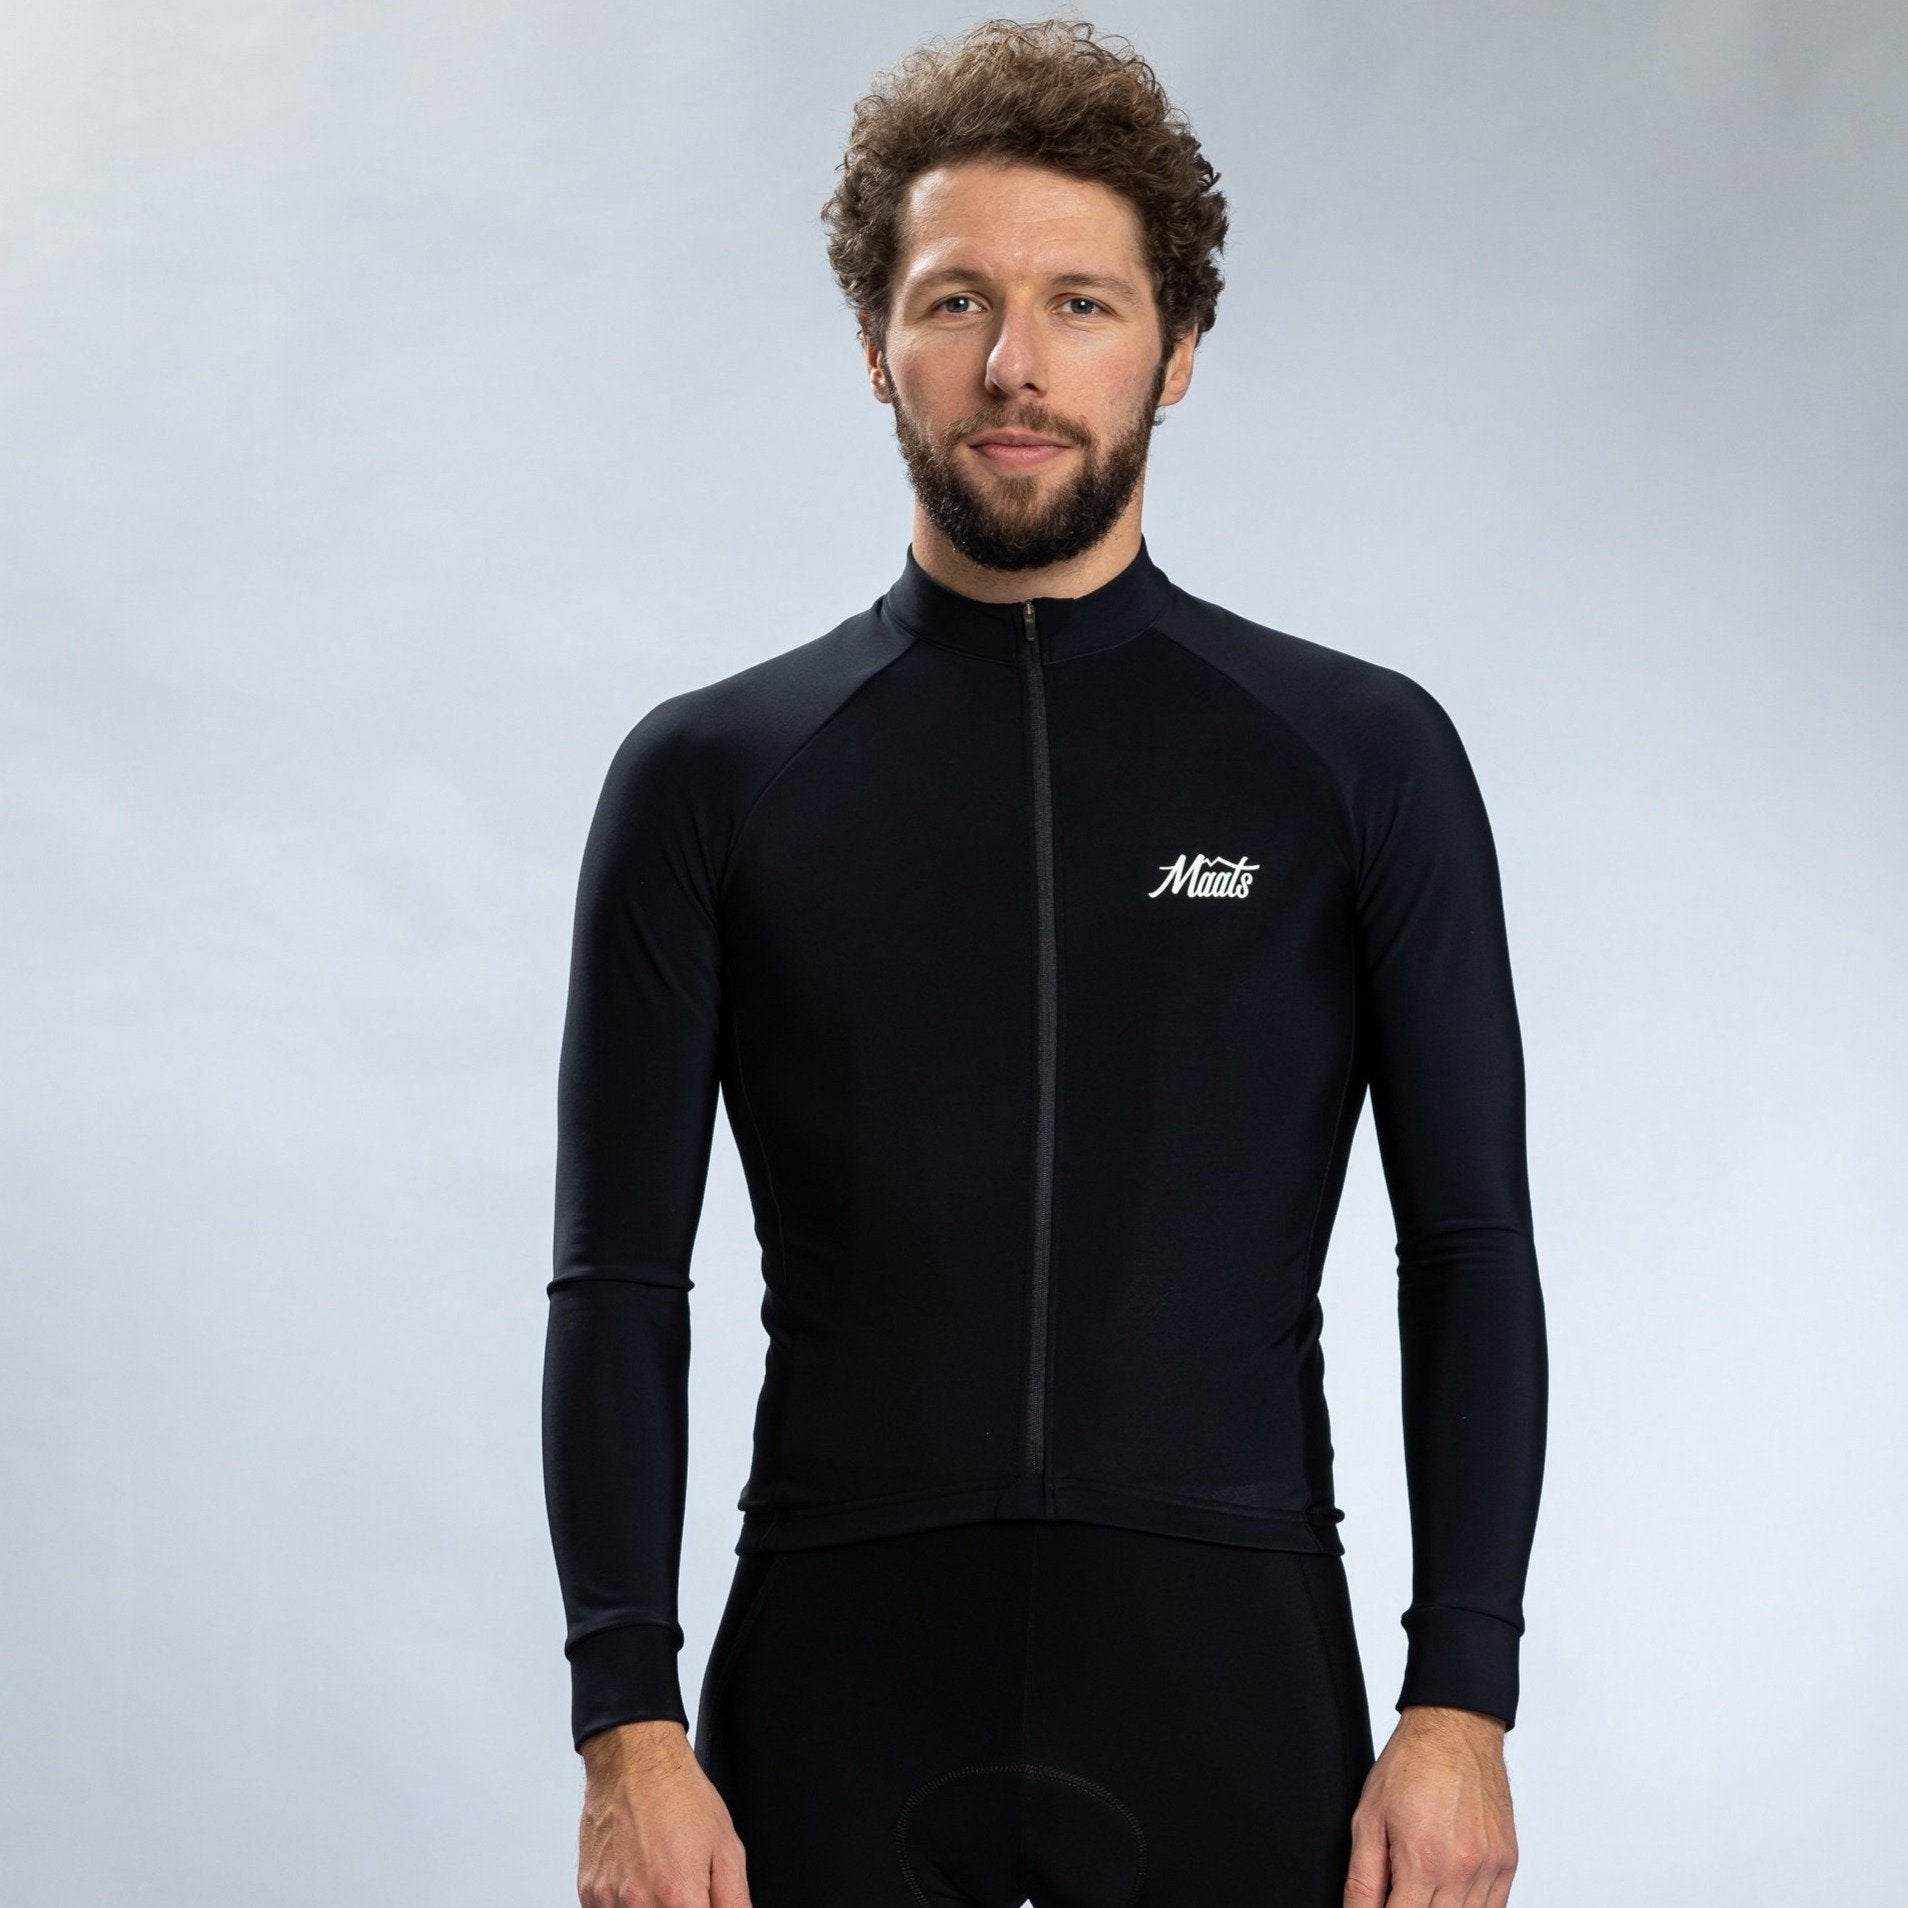 Long Sleeve Jersey Black - Maats